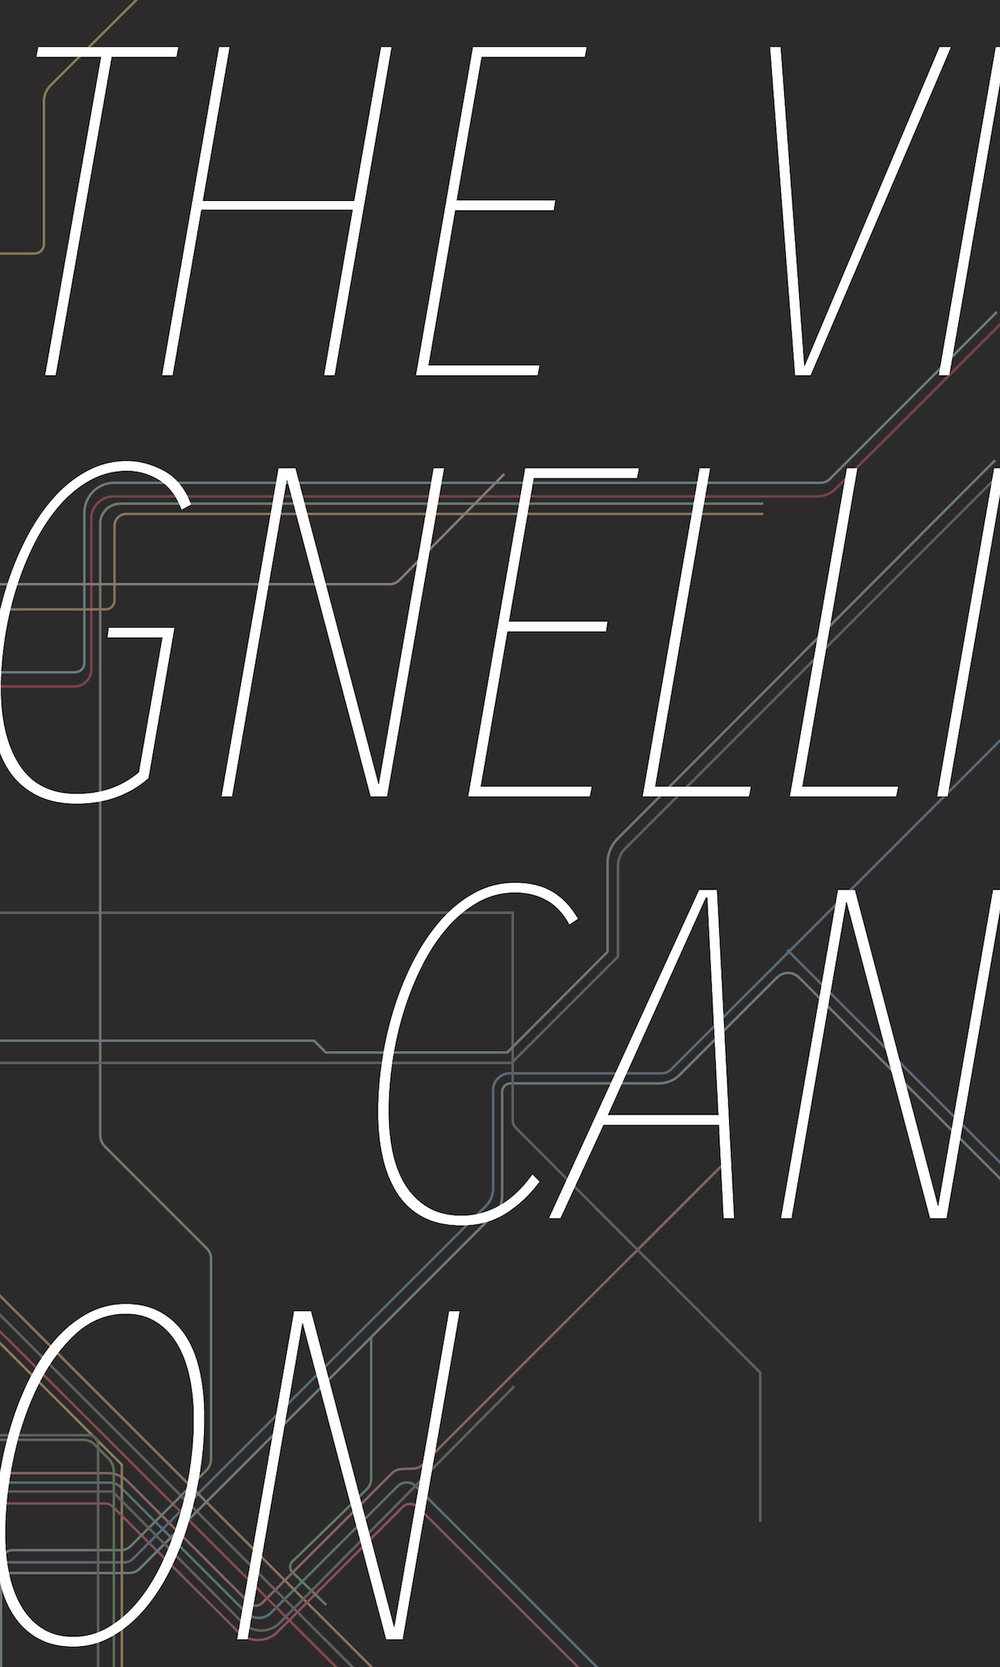 Vignelli Cannon - This is project from the Content to Cover book design course at WashU. Using the text from Italian modernist Massimo Vignelli's guide to design, I formated the book pages and added my own illustrations of some of his famous works.